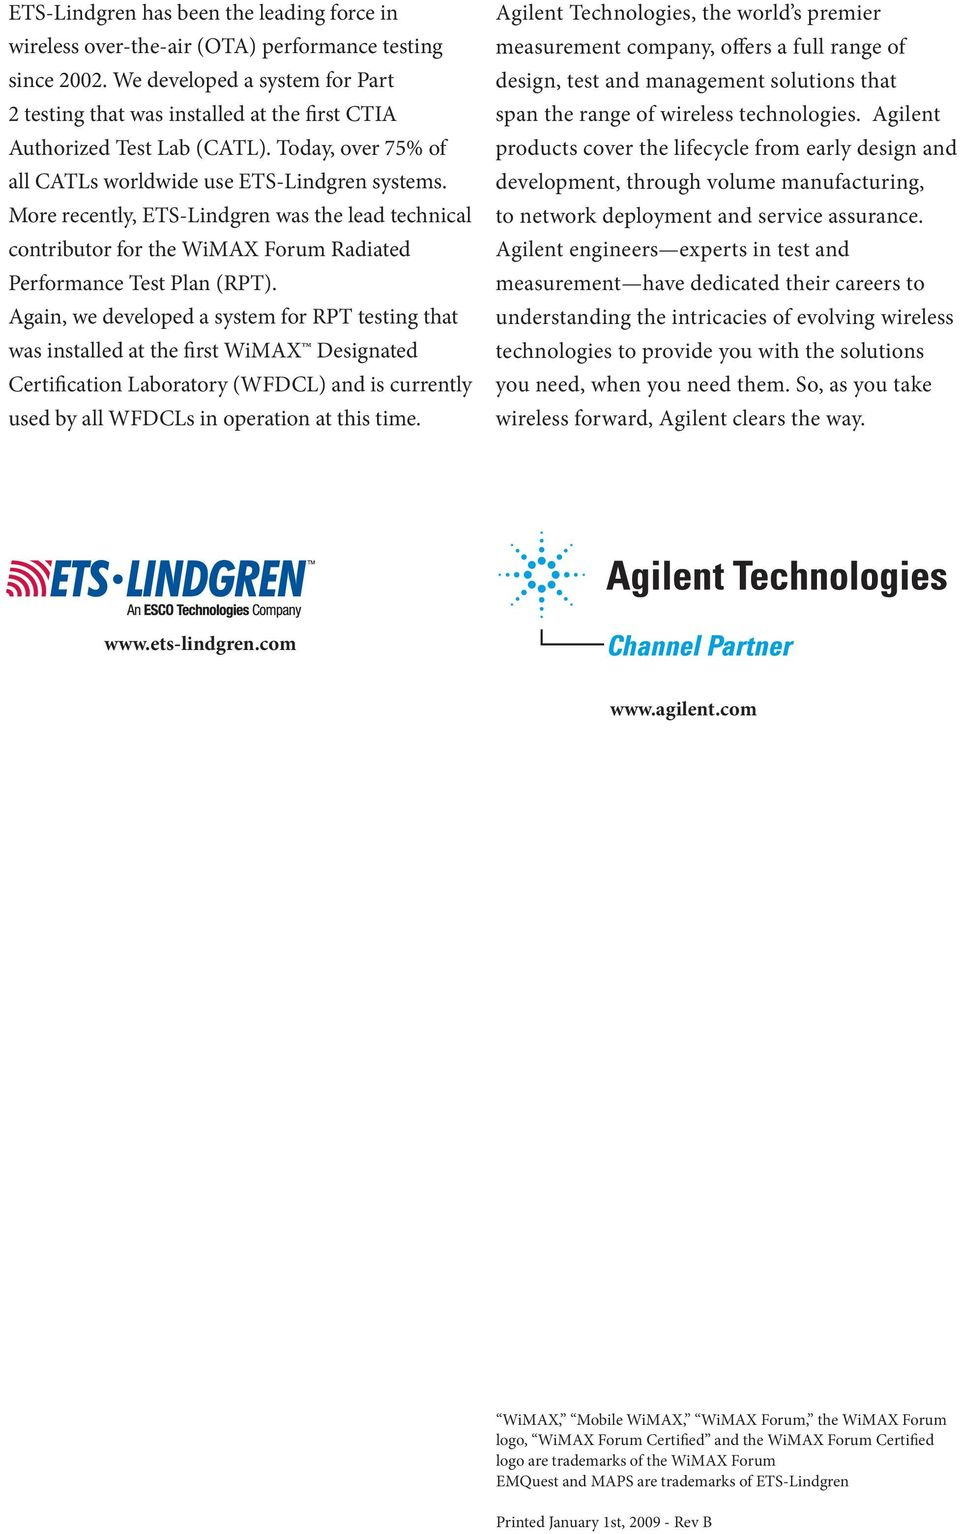 More recently, ETS-Lindgren was the lead technical contributor for the WiMAX Forum Radiated Performance Test Plan (RPT).